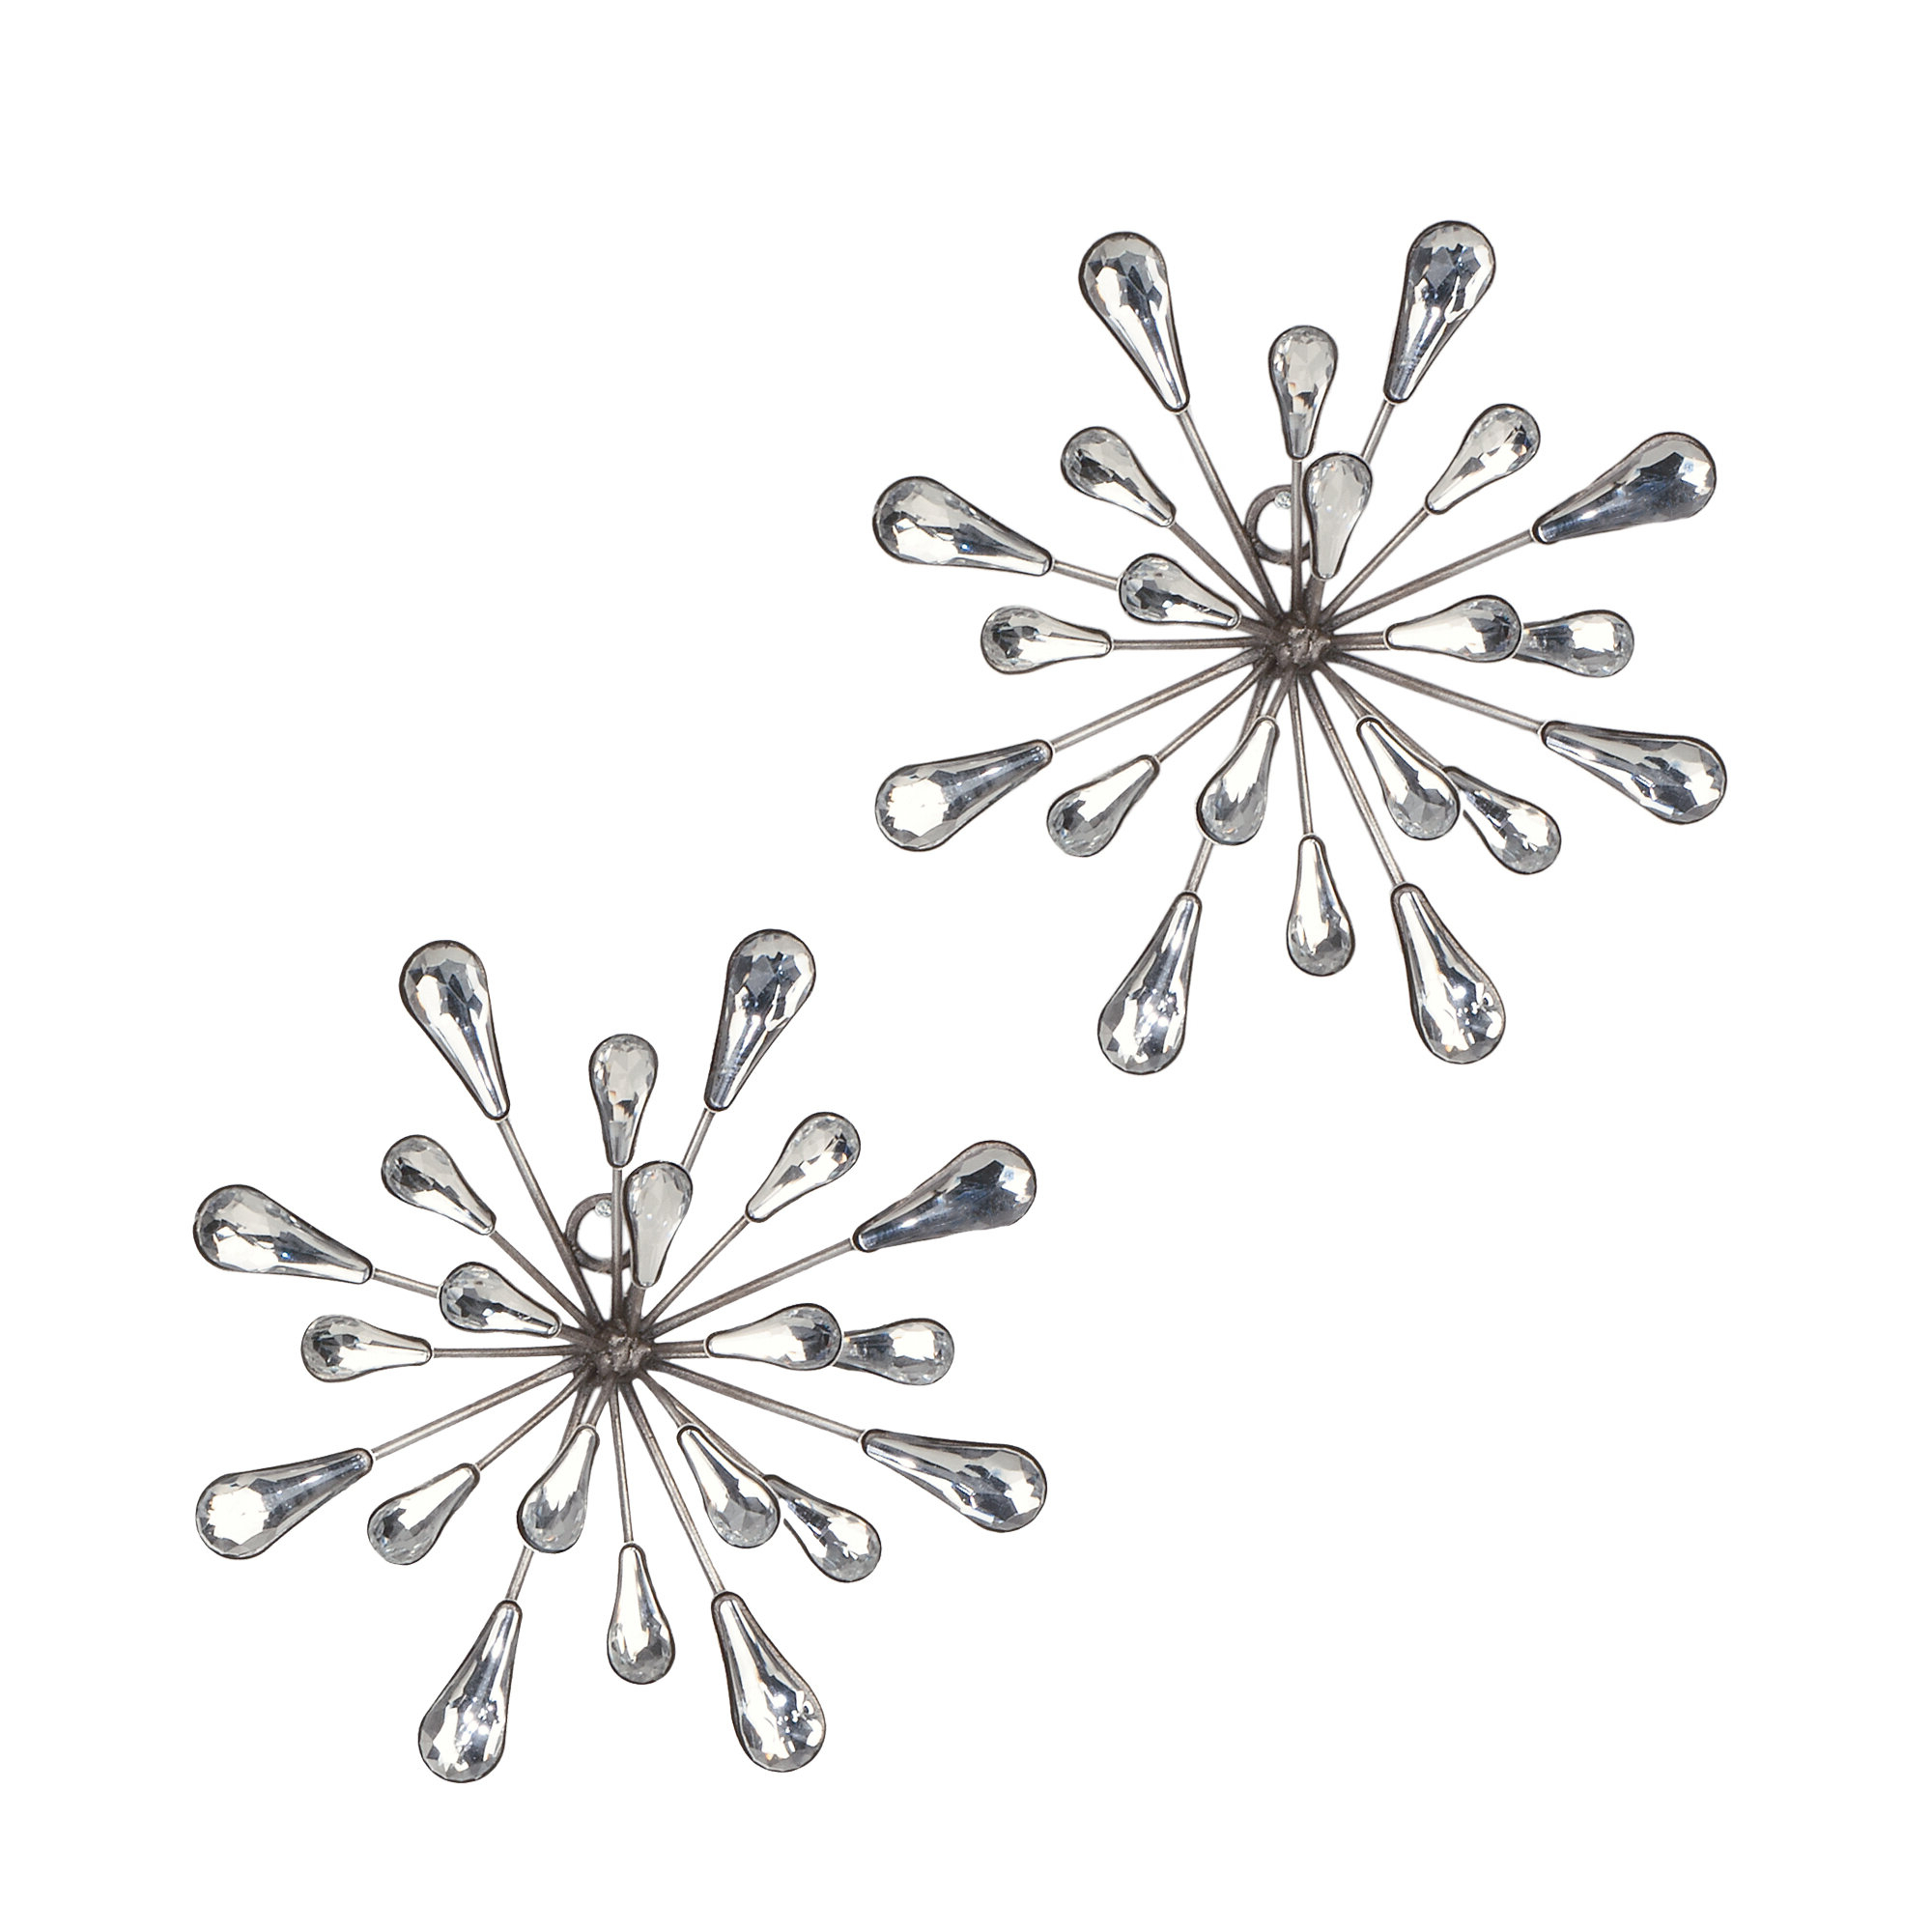 2 Piece Starburst Wall Décor Set & Reviews (View 1 of 20)